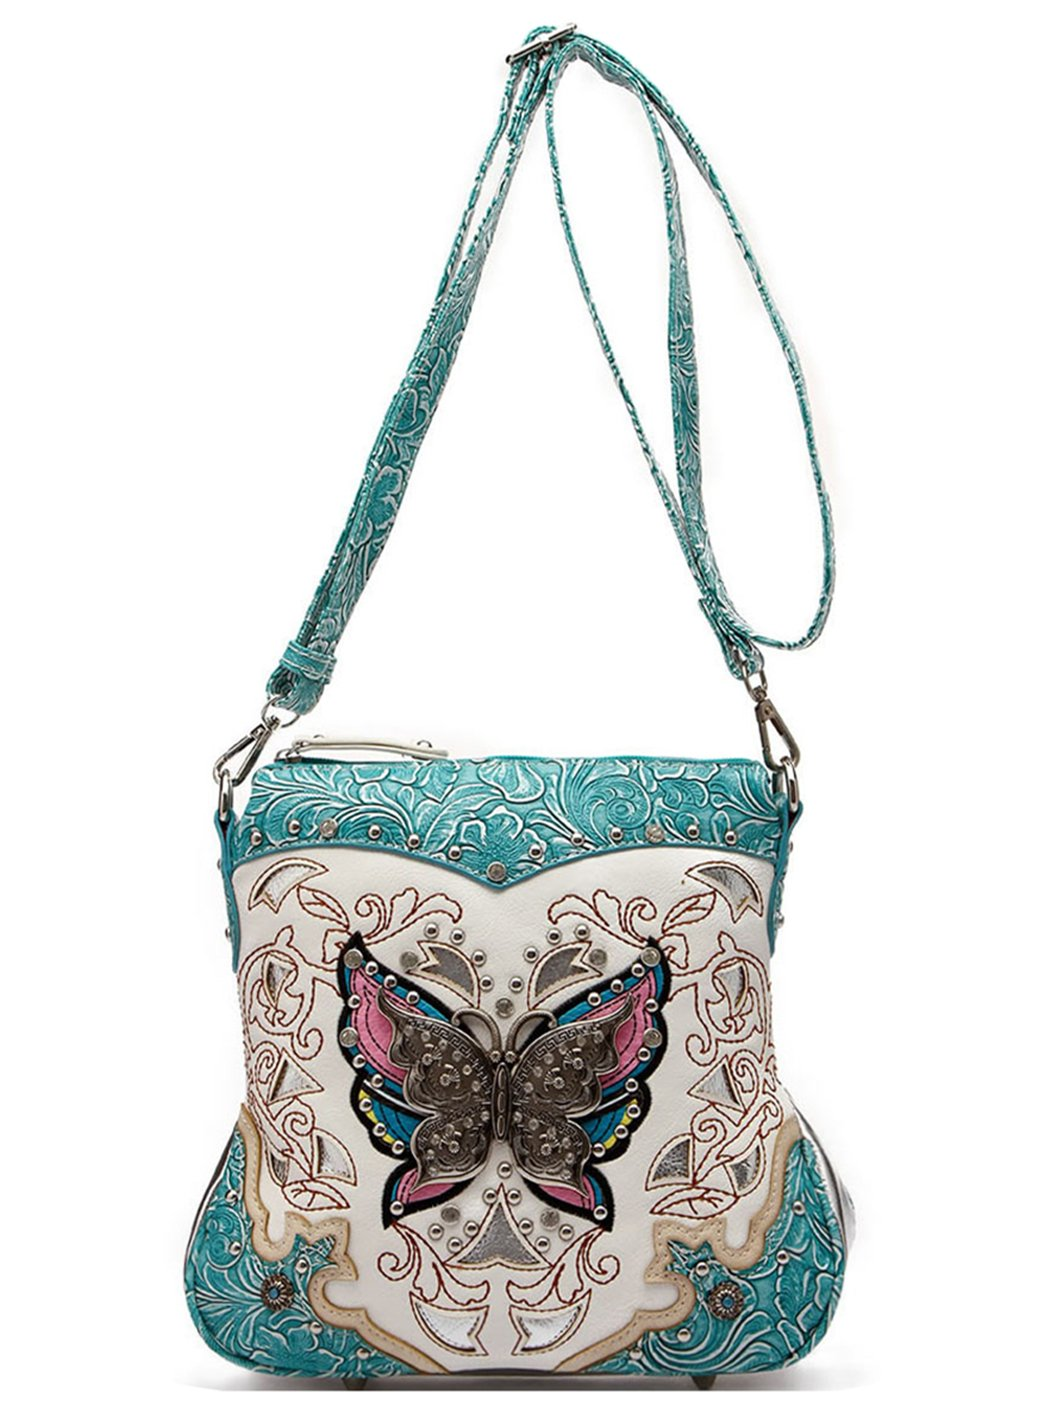 Western Style Butterfly Tooled Leather Women Purse Cross Body Handbag Concealed Carry Single Shoulder Bag (Turquoise)